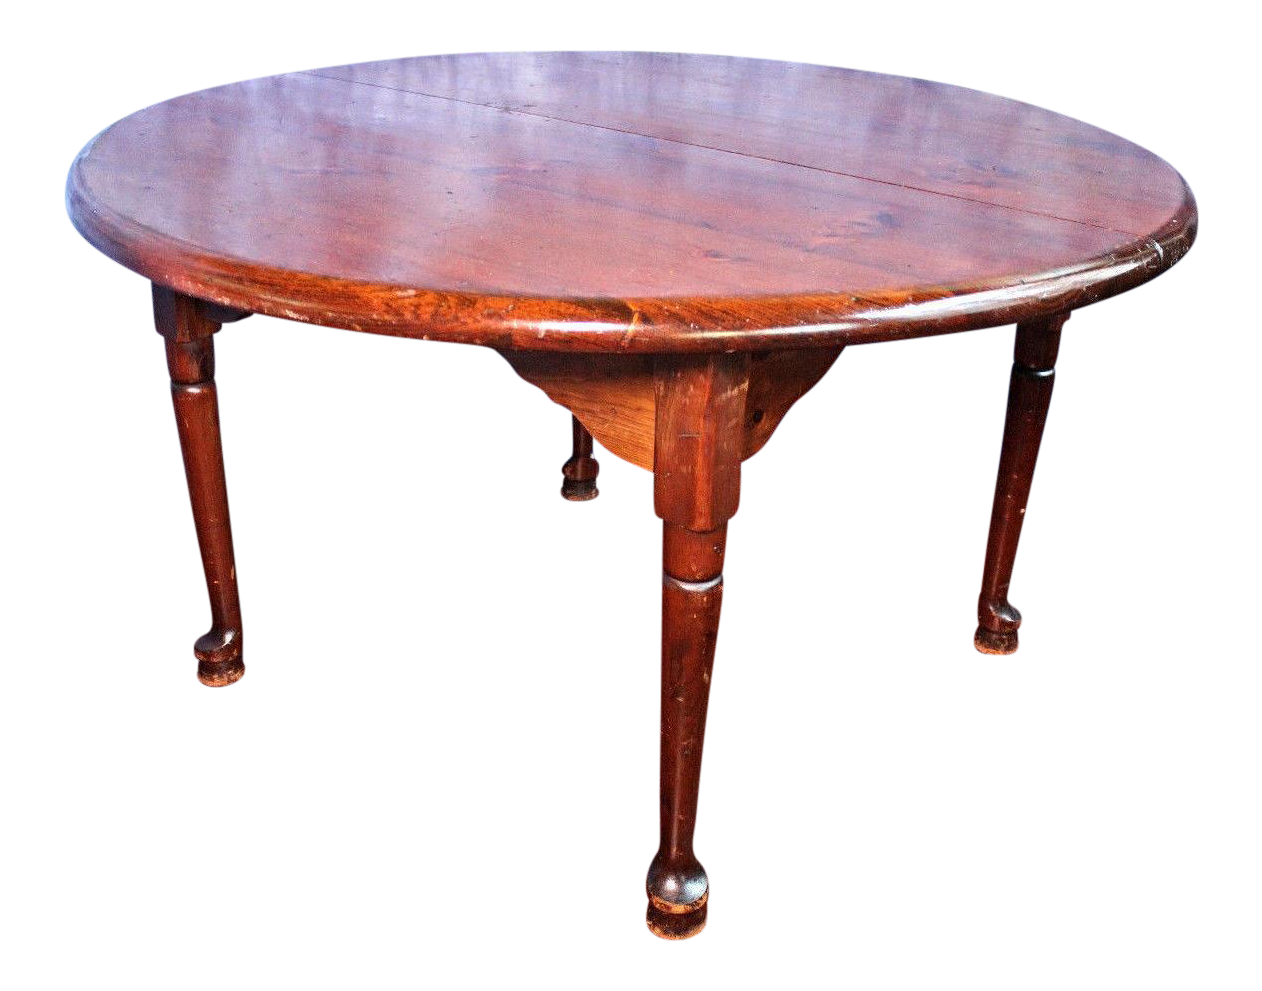 Antique Queen Anne Style Round Dining Table Chairish : antique queen anne style round dining table 2688 from www.chairish.com size 1262 x 991 png 1814kB